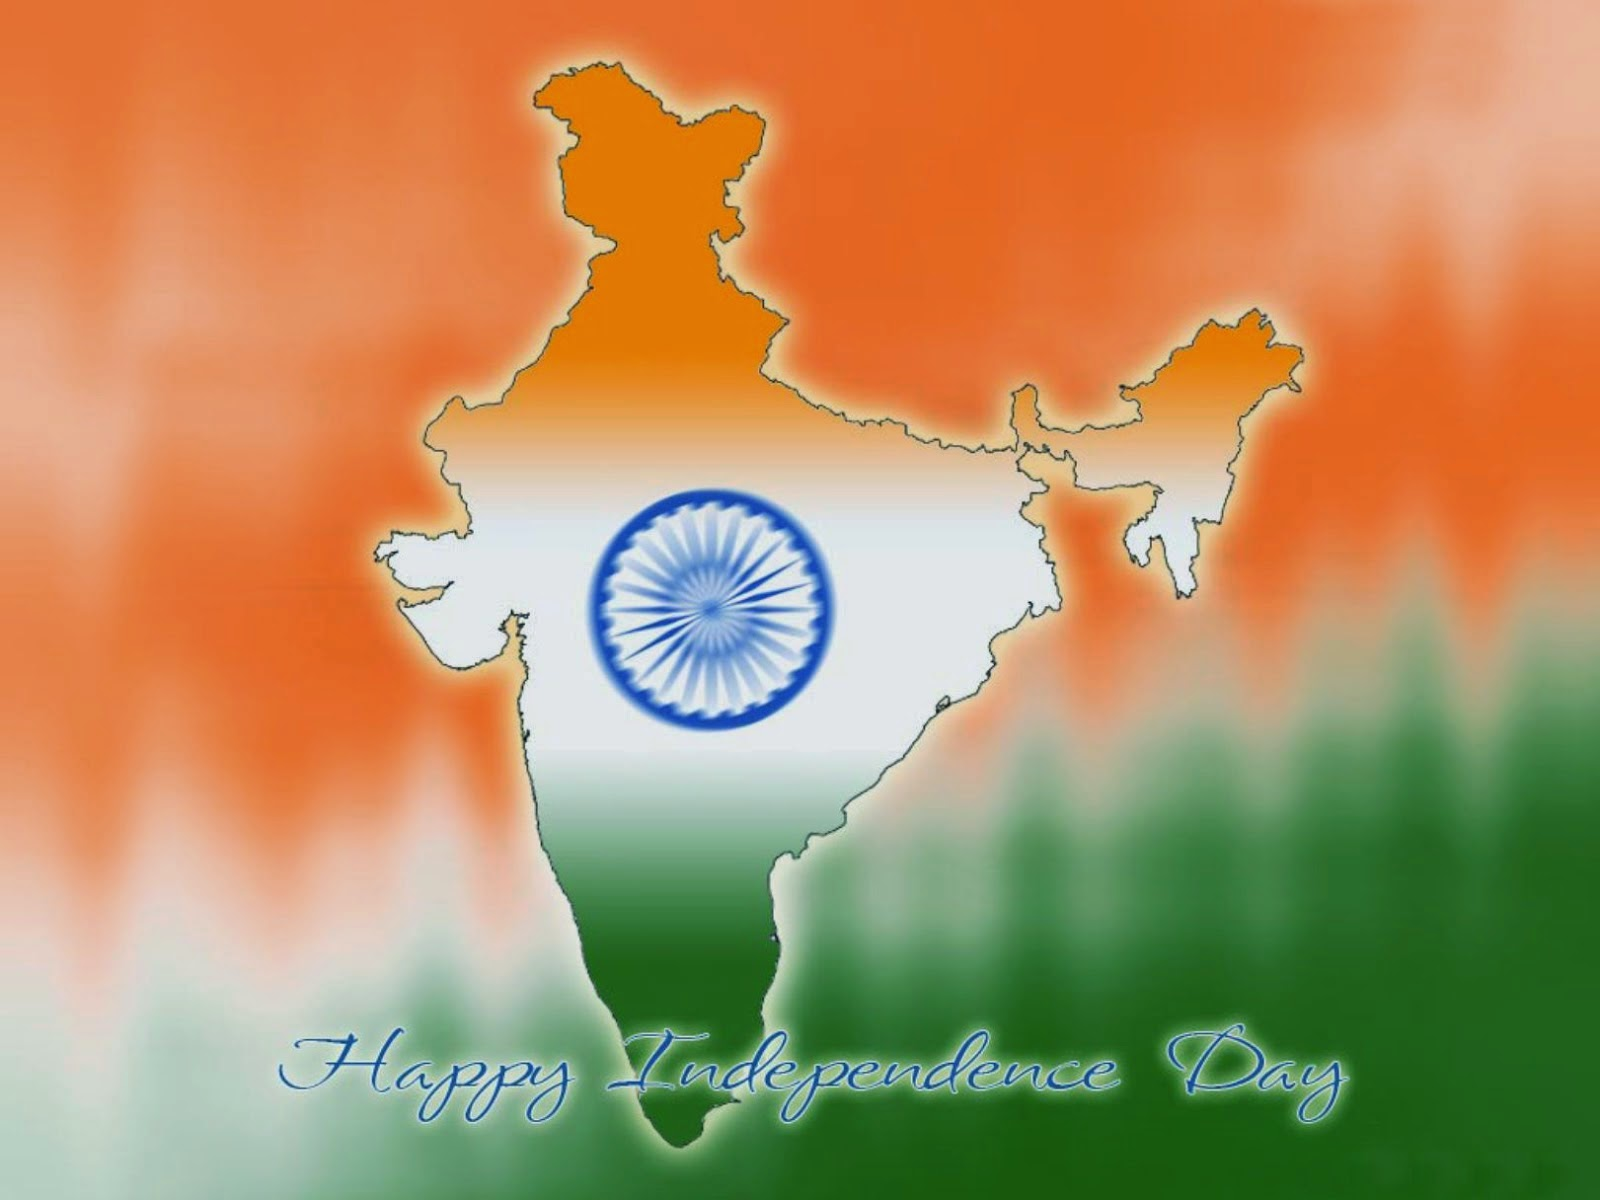 Happy Independence Day 2014 Wallpapers HD